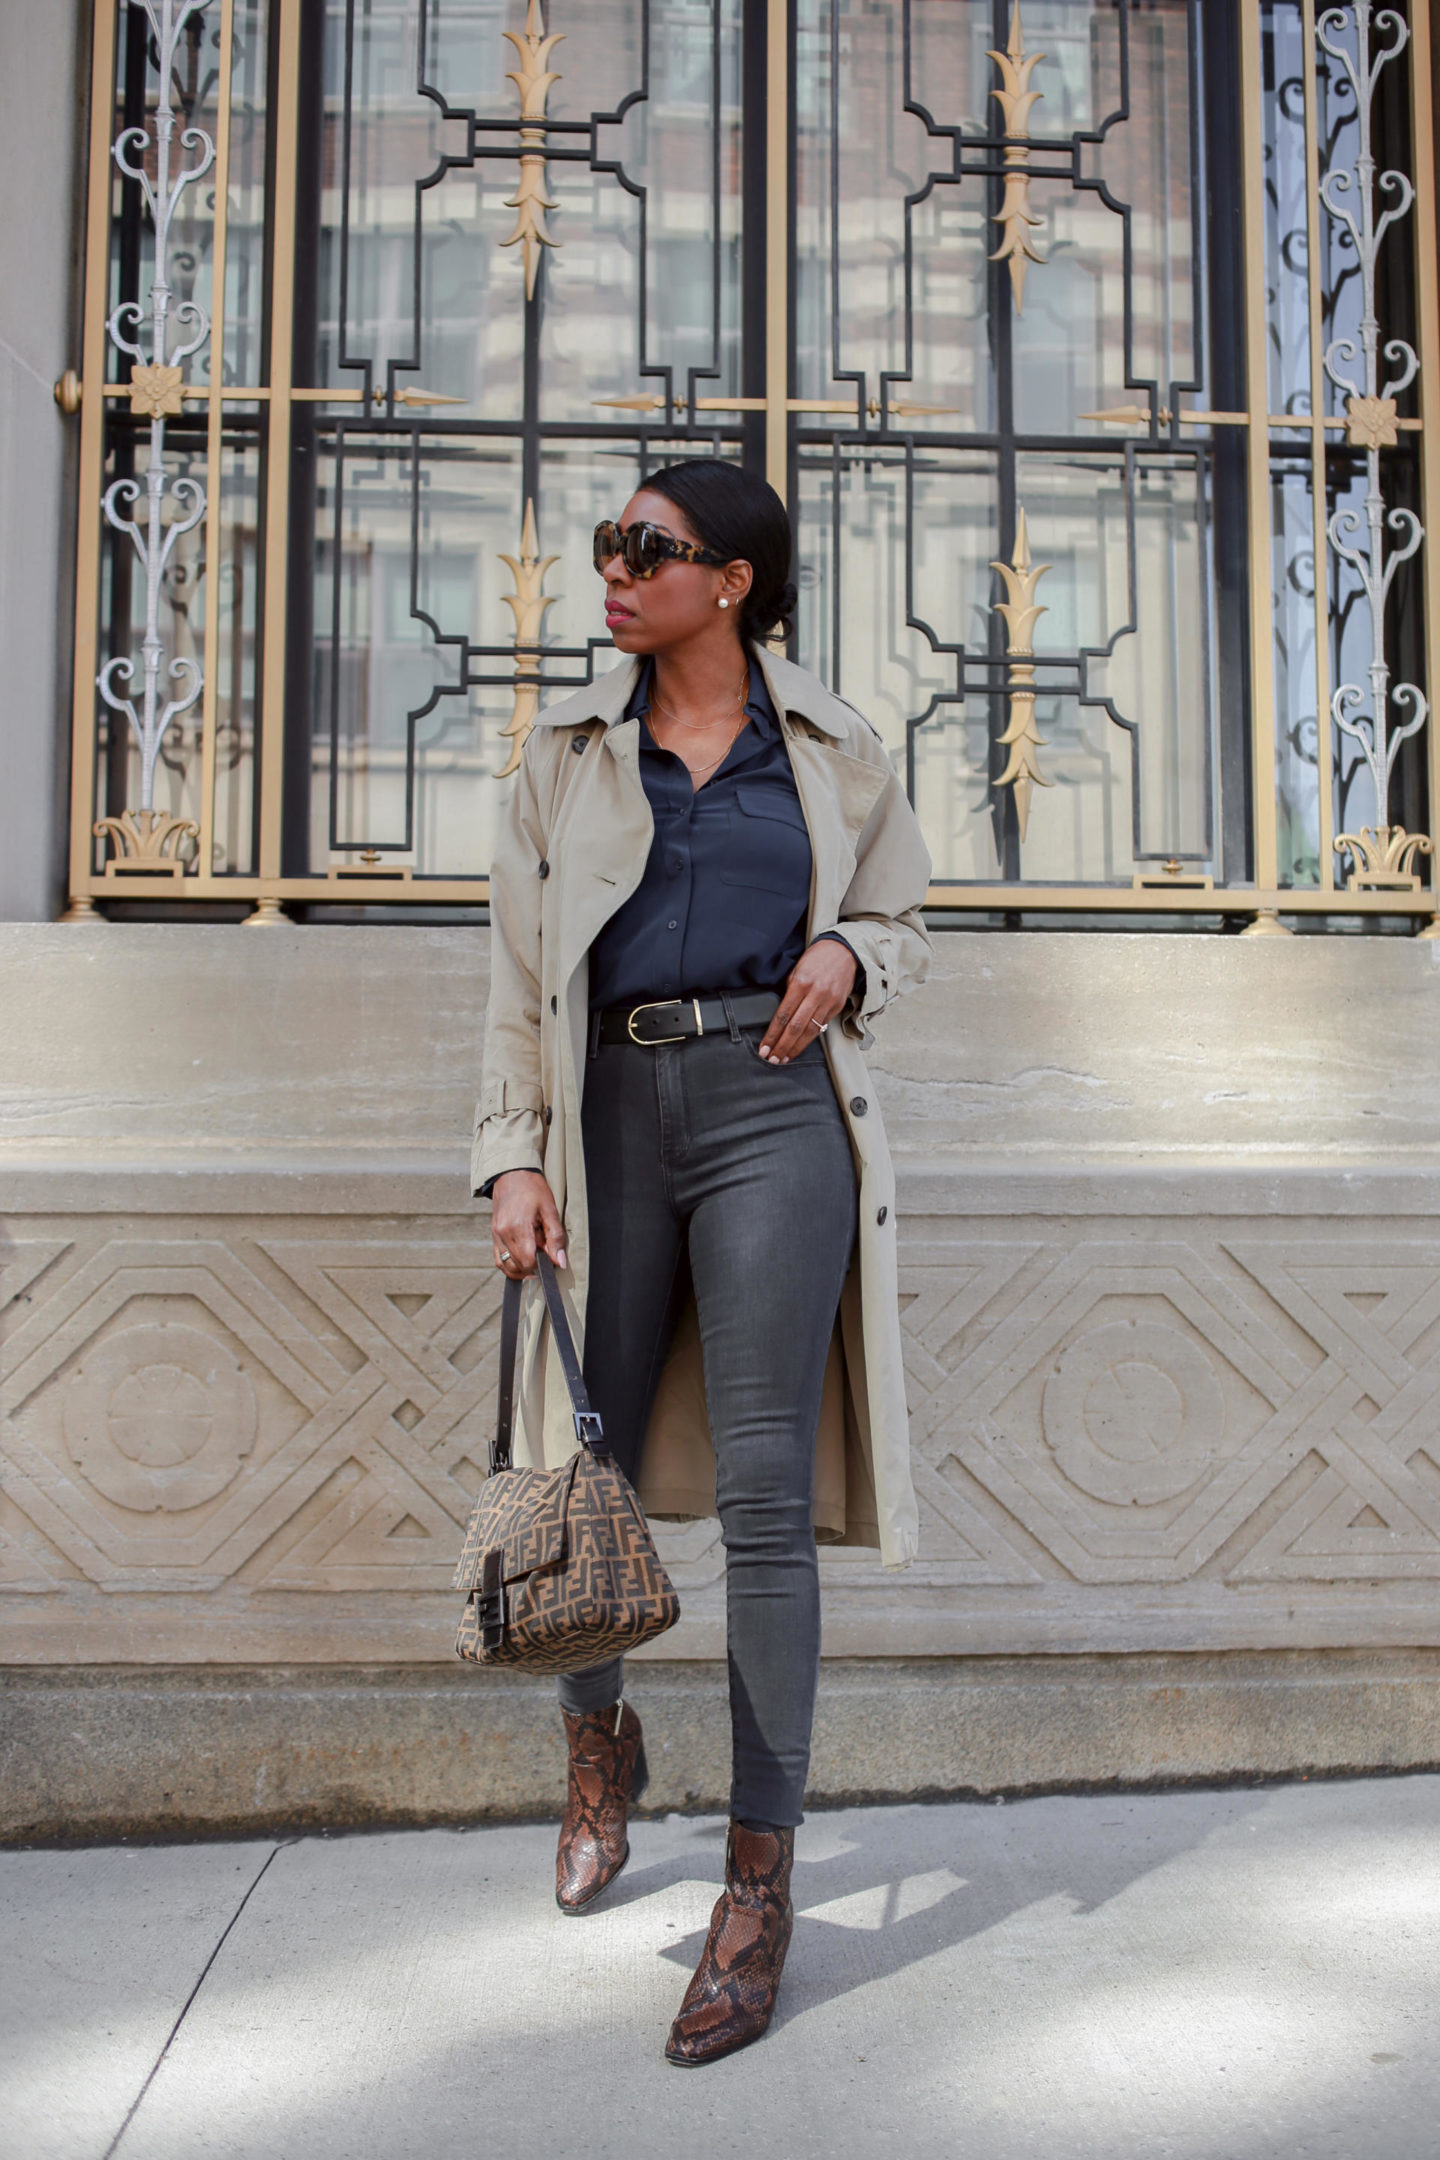 Dominique Baker Wearing Mott & Bow Orchard High-Waisted Skinny Jeans and Harper Silk Blouse Fendi Mama Bag François Pinton Jacky Sunglasses